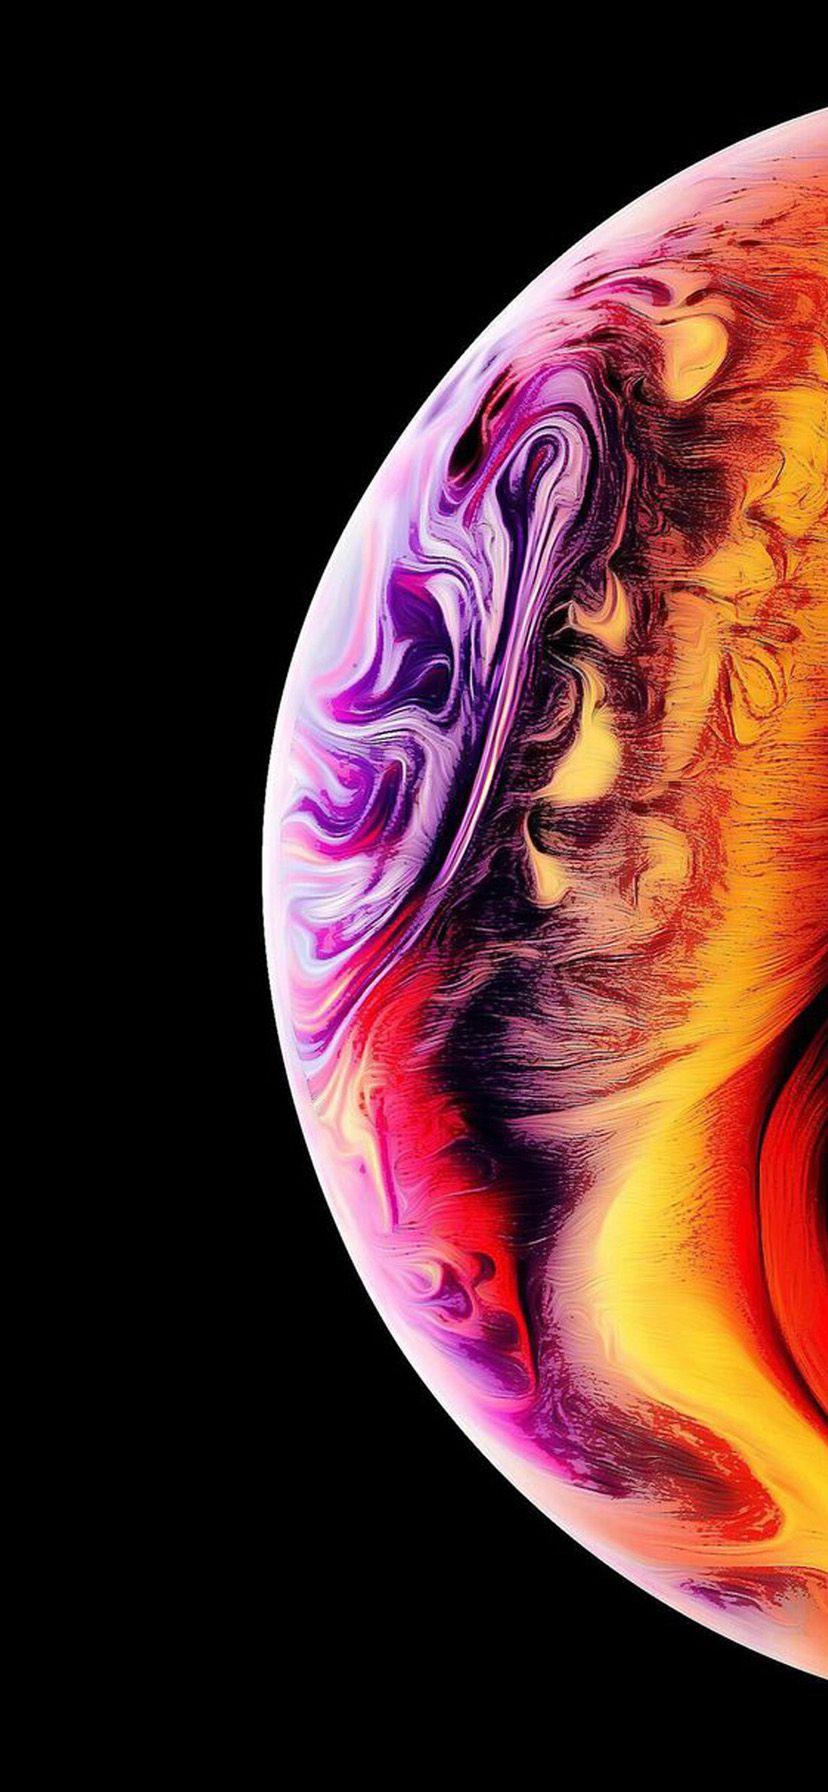 Iphone Xr Wallpaper 4k Download Free Trippy Wallpaper Iphone